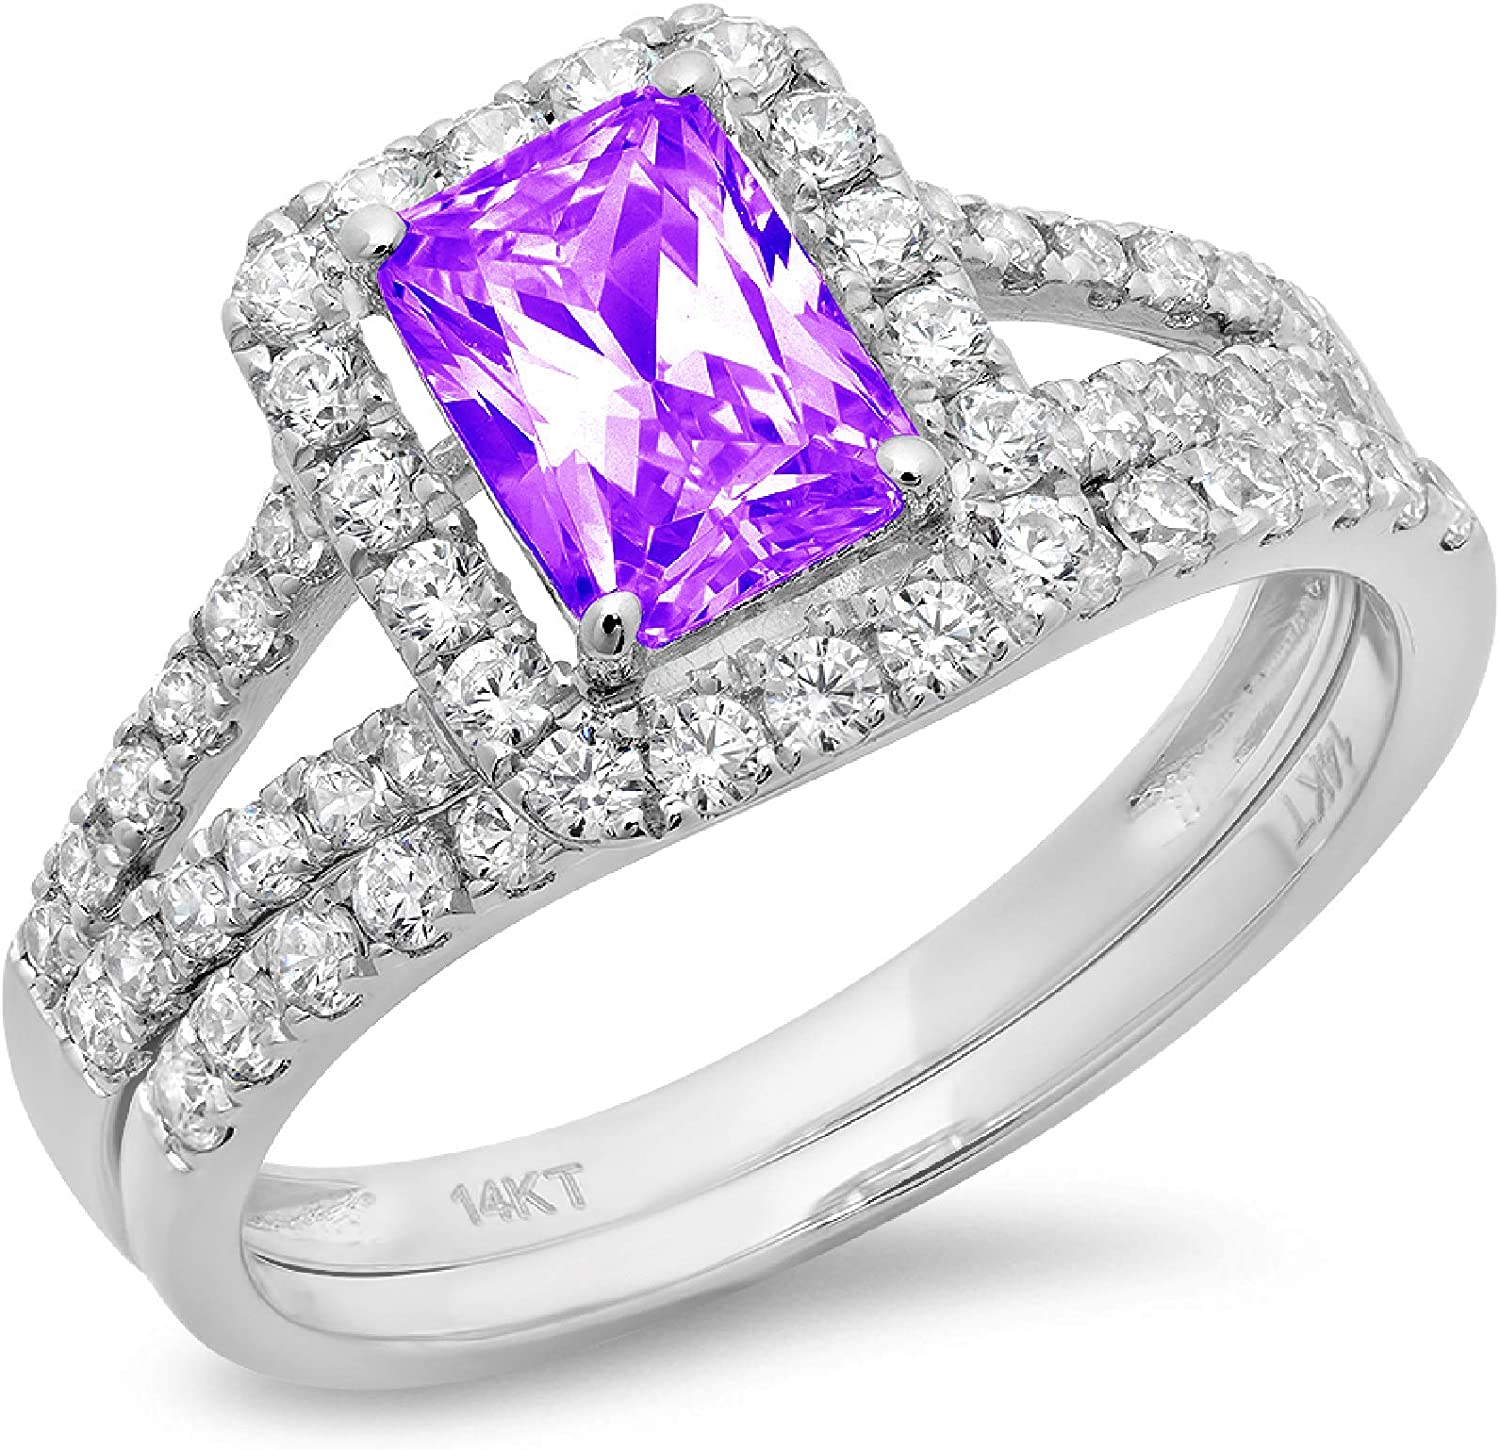 1.60ct Emerald Round Cut Pave Halo Split Shank Solitaire Accent Natural Purple Amethyst Engagement Promise Statement Anniversary Bridal Wedding Ring Band set 14k White Gold